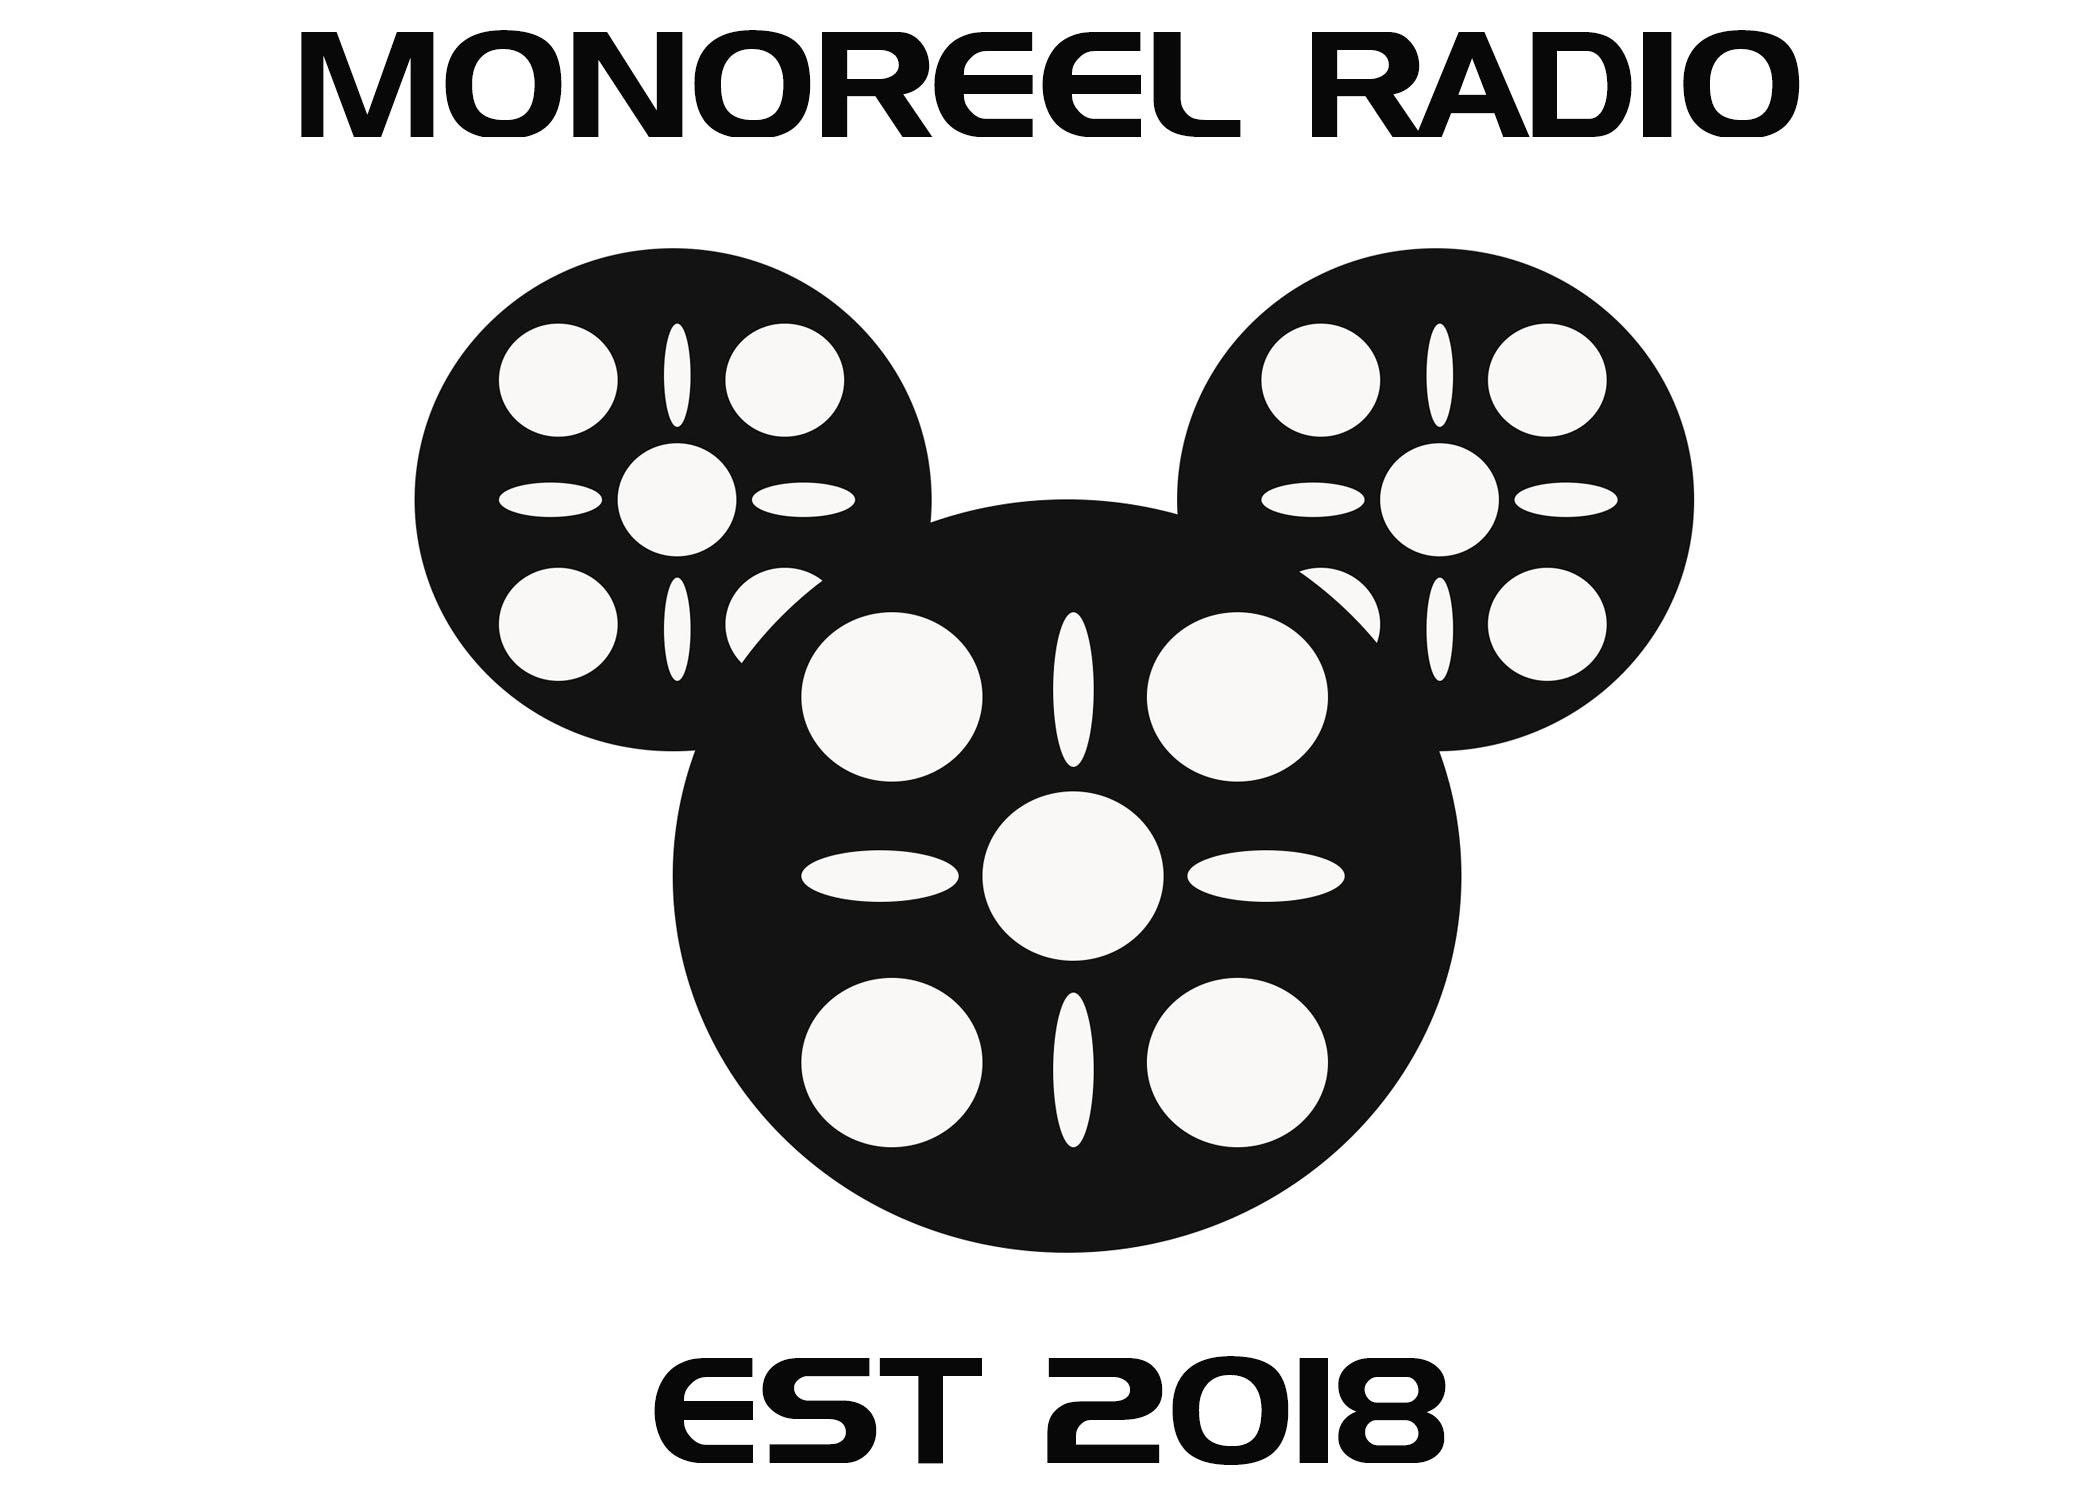 Monoreel Radio Episode #41 - Prince Of Persia: The Sands Of Time